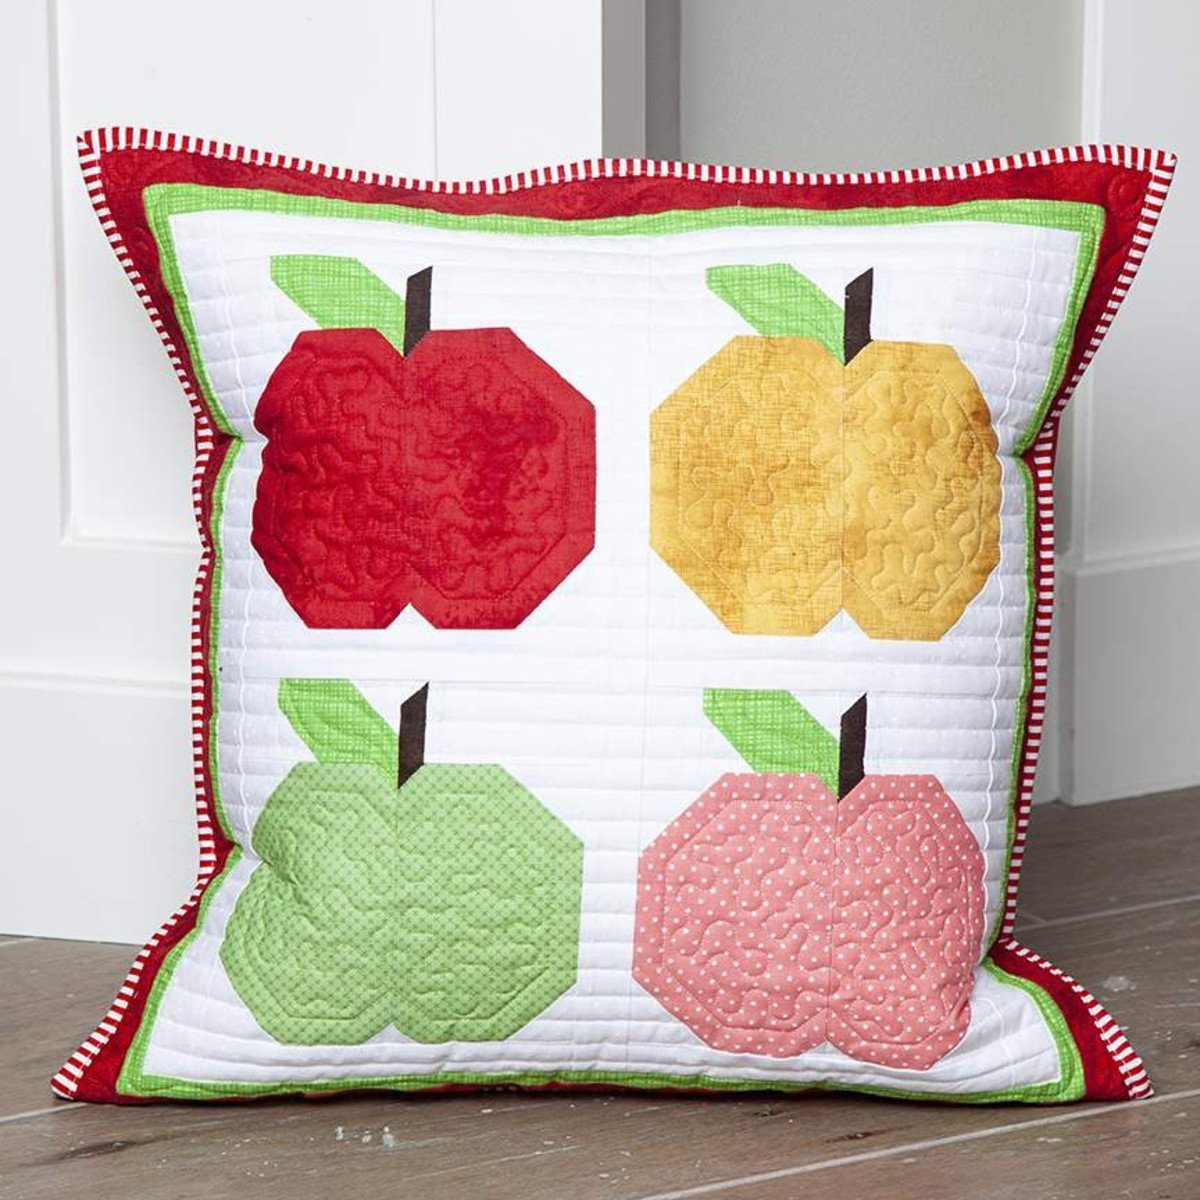 PILLOW OF THE MONTH  SEPTEMBER - RILEY BLAKE